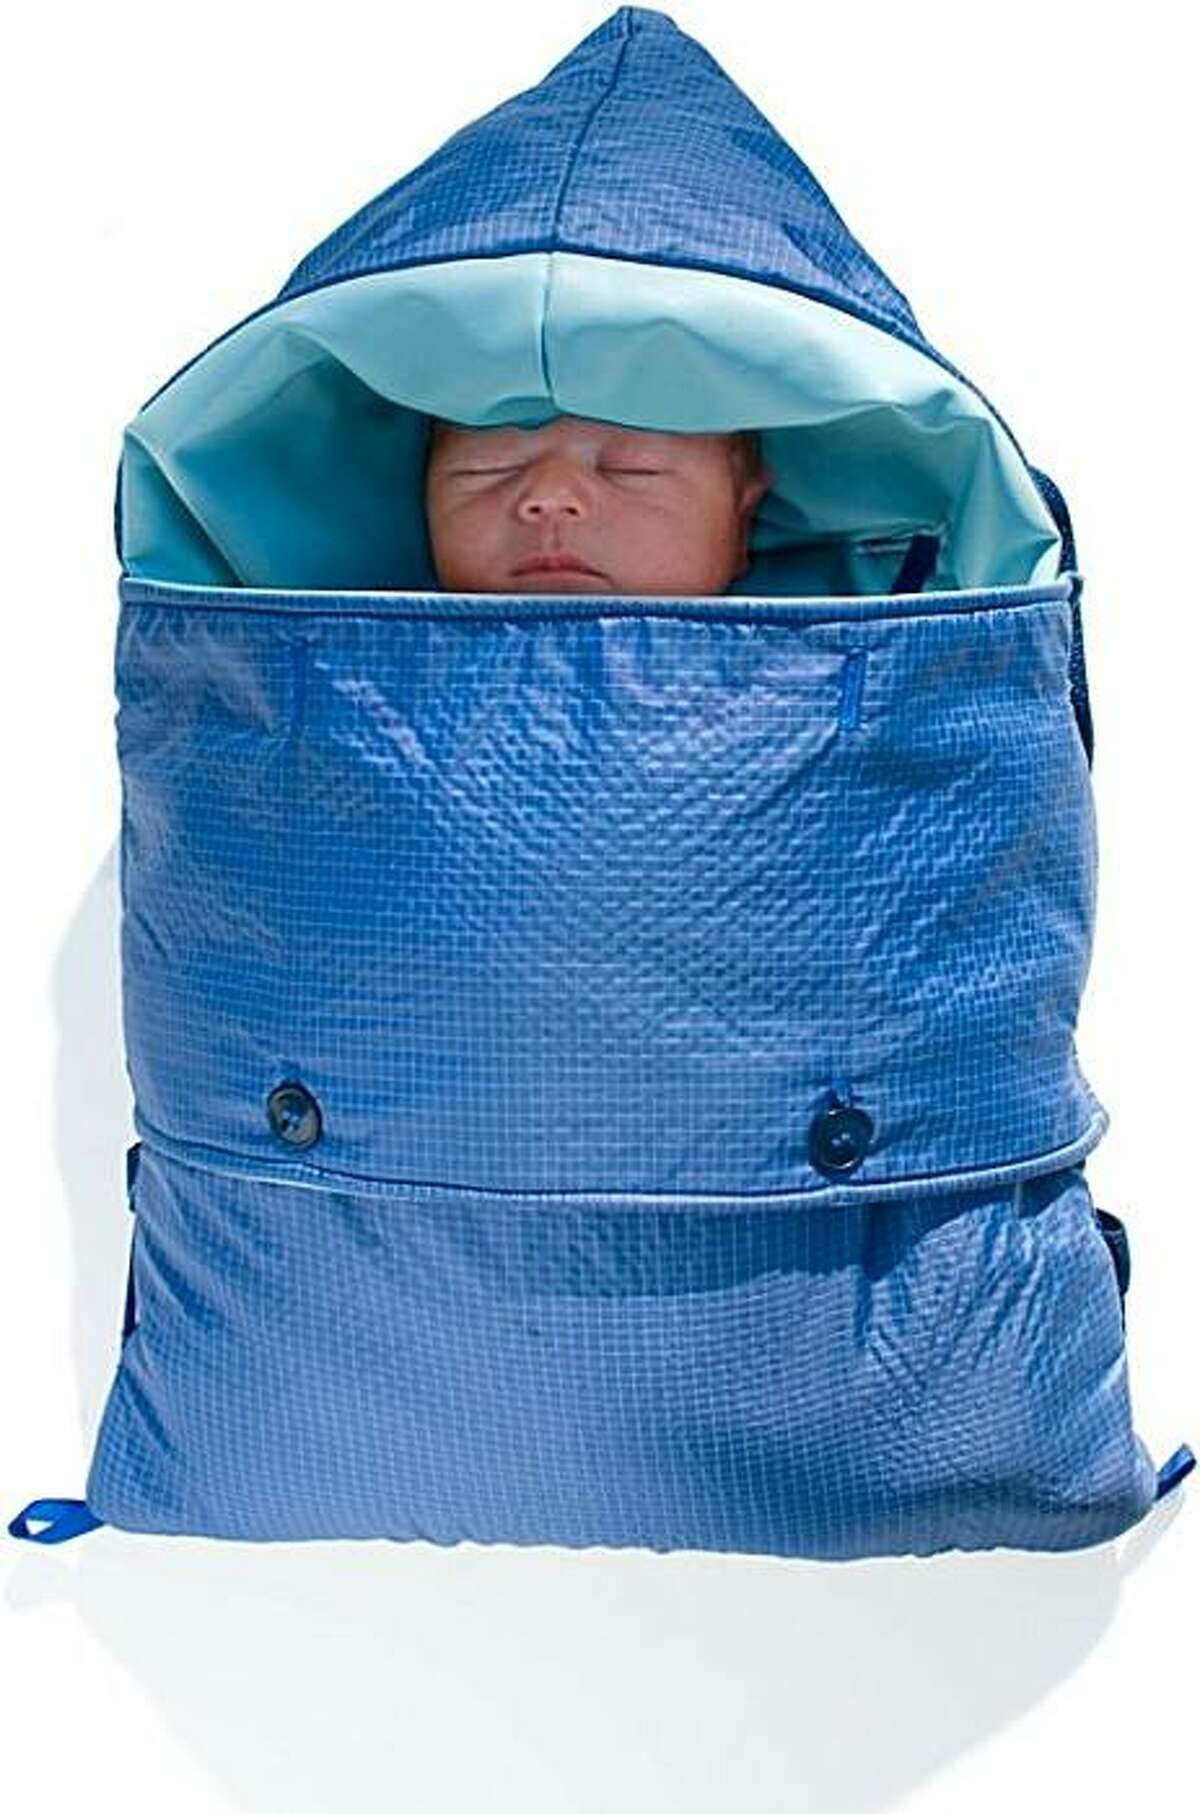 A baby is tucked into an early version of the Embrace Infant Warmer in 2009. Babies need to stay warm. No longer in their mother's cocoon, they need help keeping their body temperature up during their early days of life. It sounds simple, yet for millions of infants it can be a struggle, sometimes a fatal one. Embrace, a San Francisco social enterprise born out of a Stanford design class, is hoping to change the tide. Its incubator, which it plans to launch at the end of this year, can keep babies snug at a fraction of the cost of a traditional one. Globally more than 20 million babies are born premature or with low birth weight each year, according to the World Health Organization. Four million of them die within the first four weeks of life.